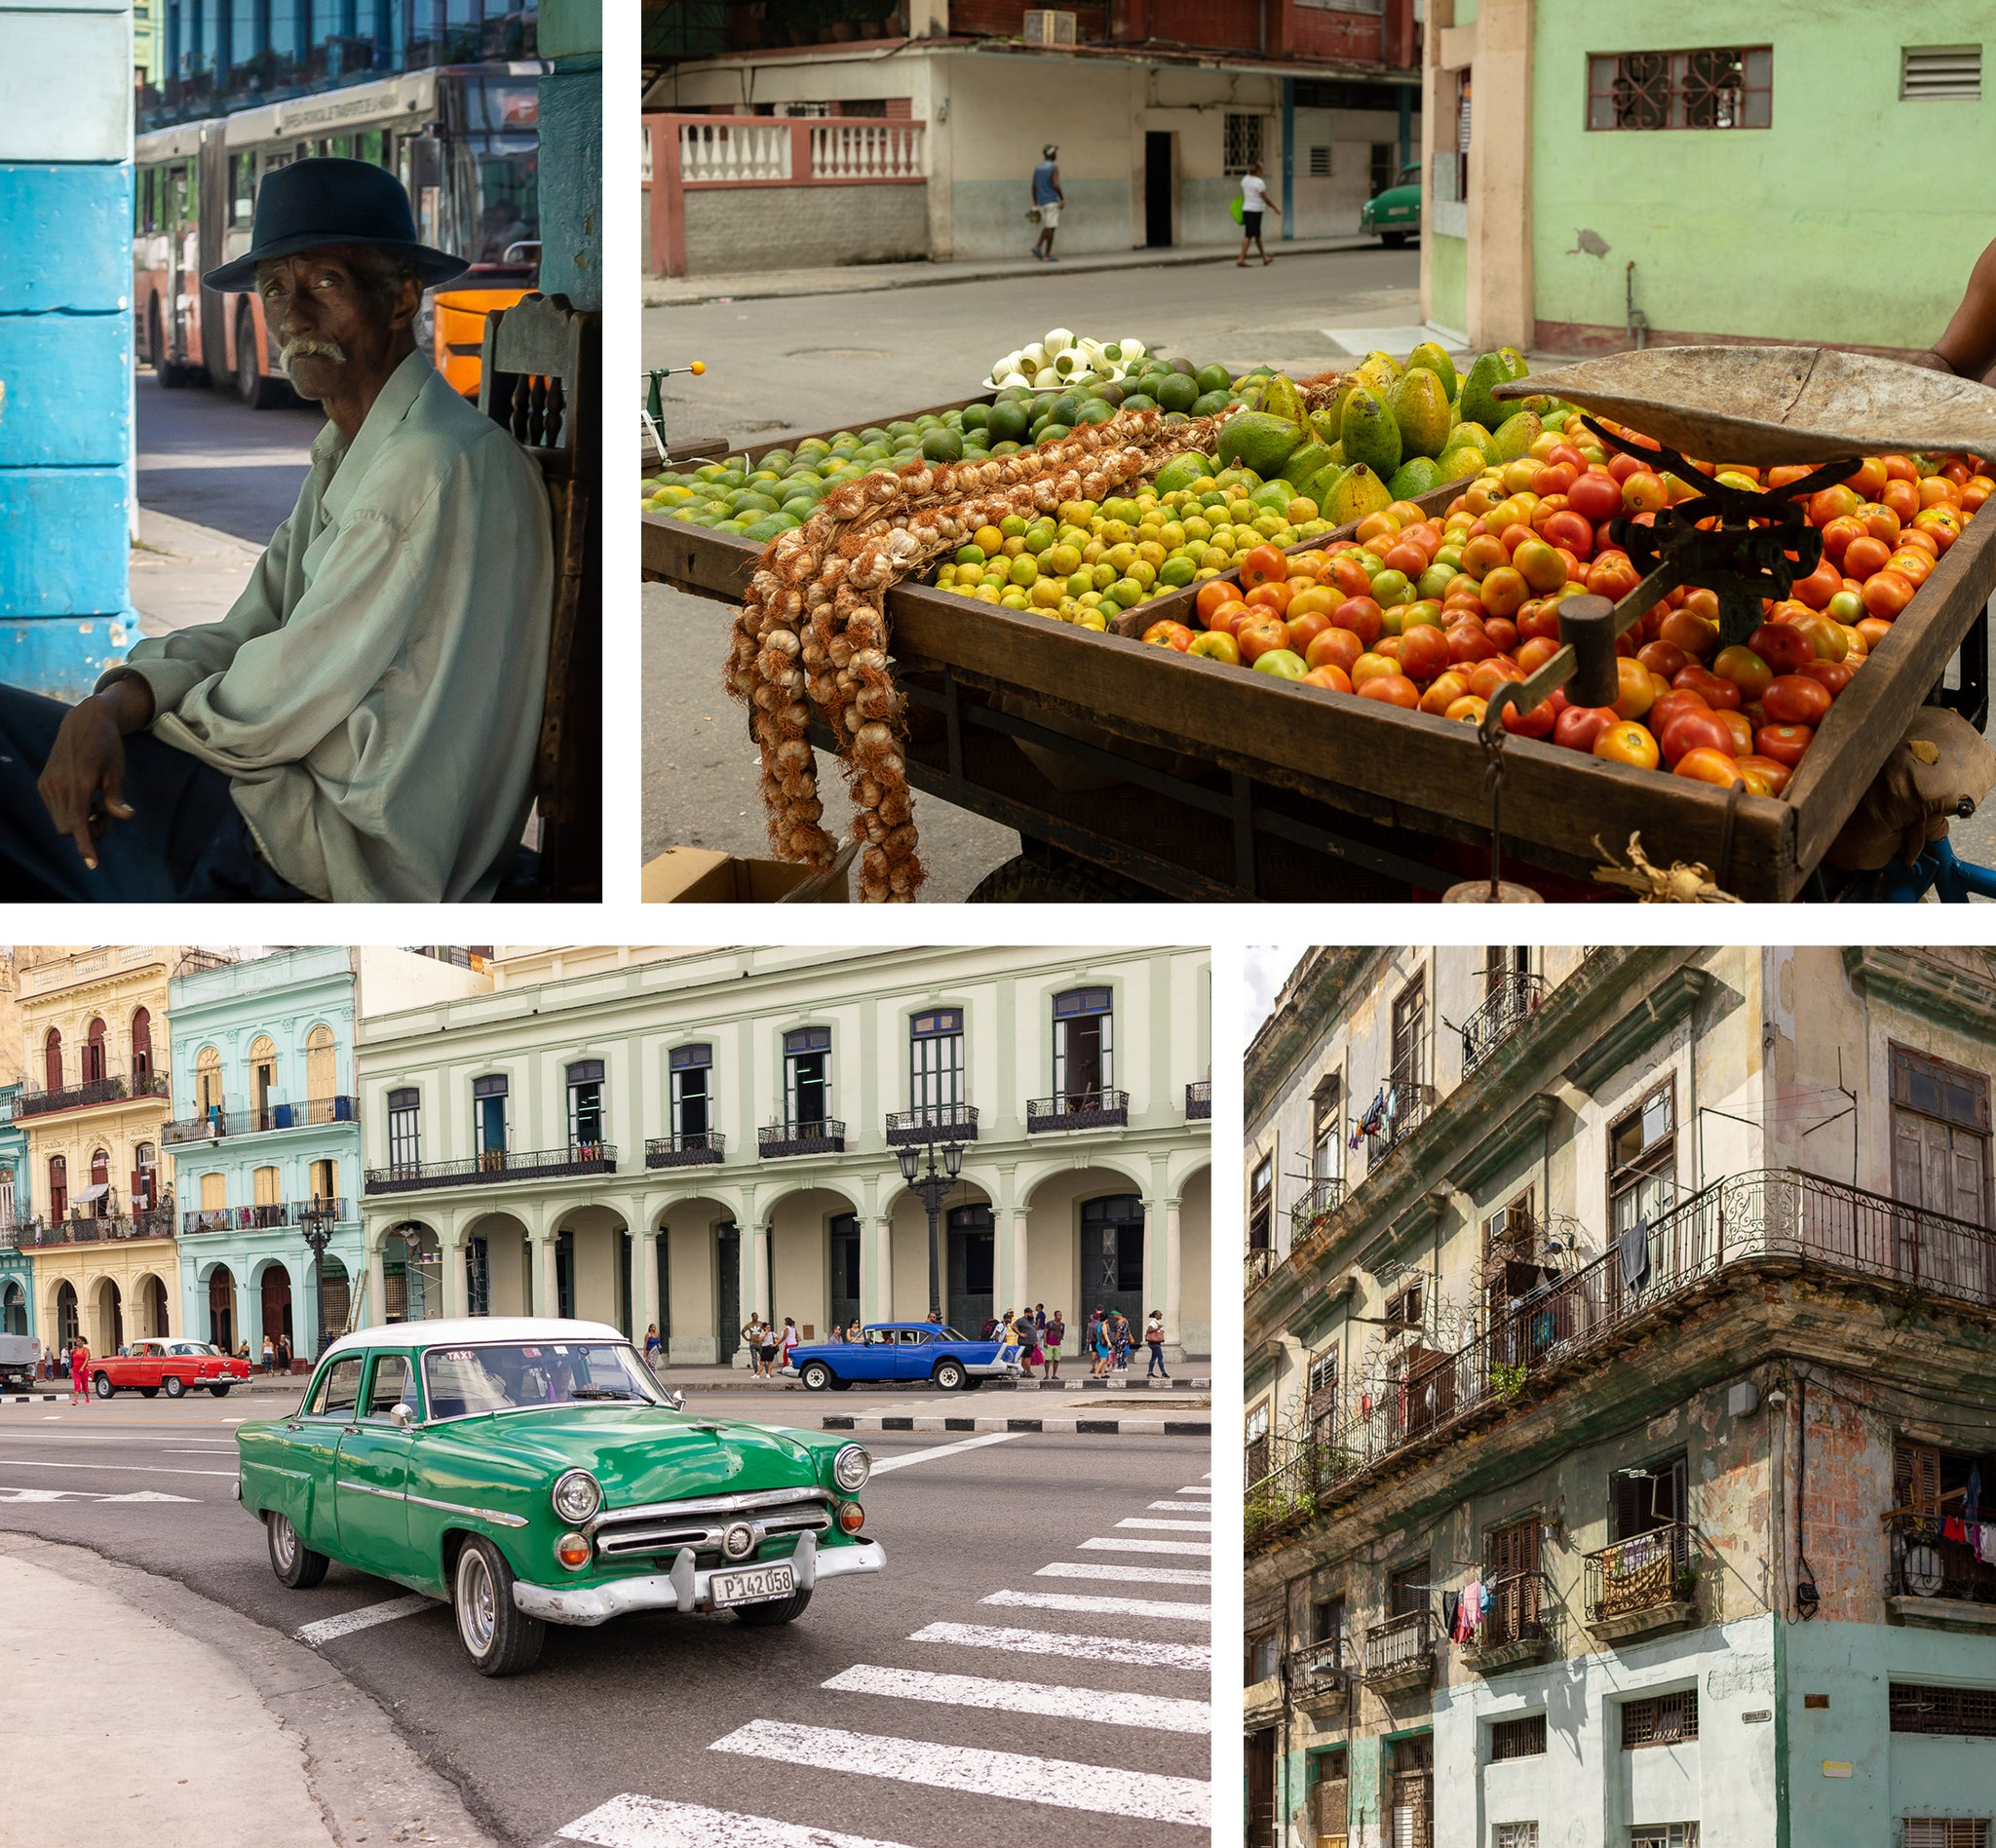 portrait of a local fresh fruits colourful car on the streets picturesque balcony havana cuba EGM Cigars